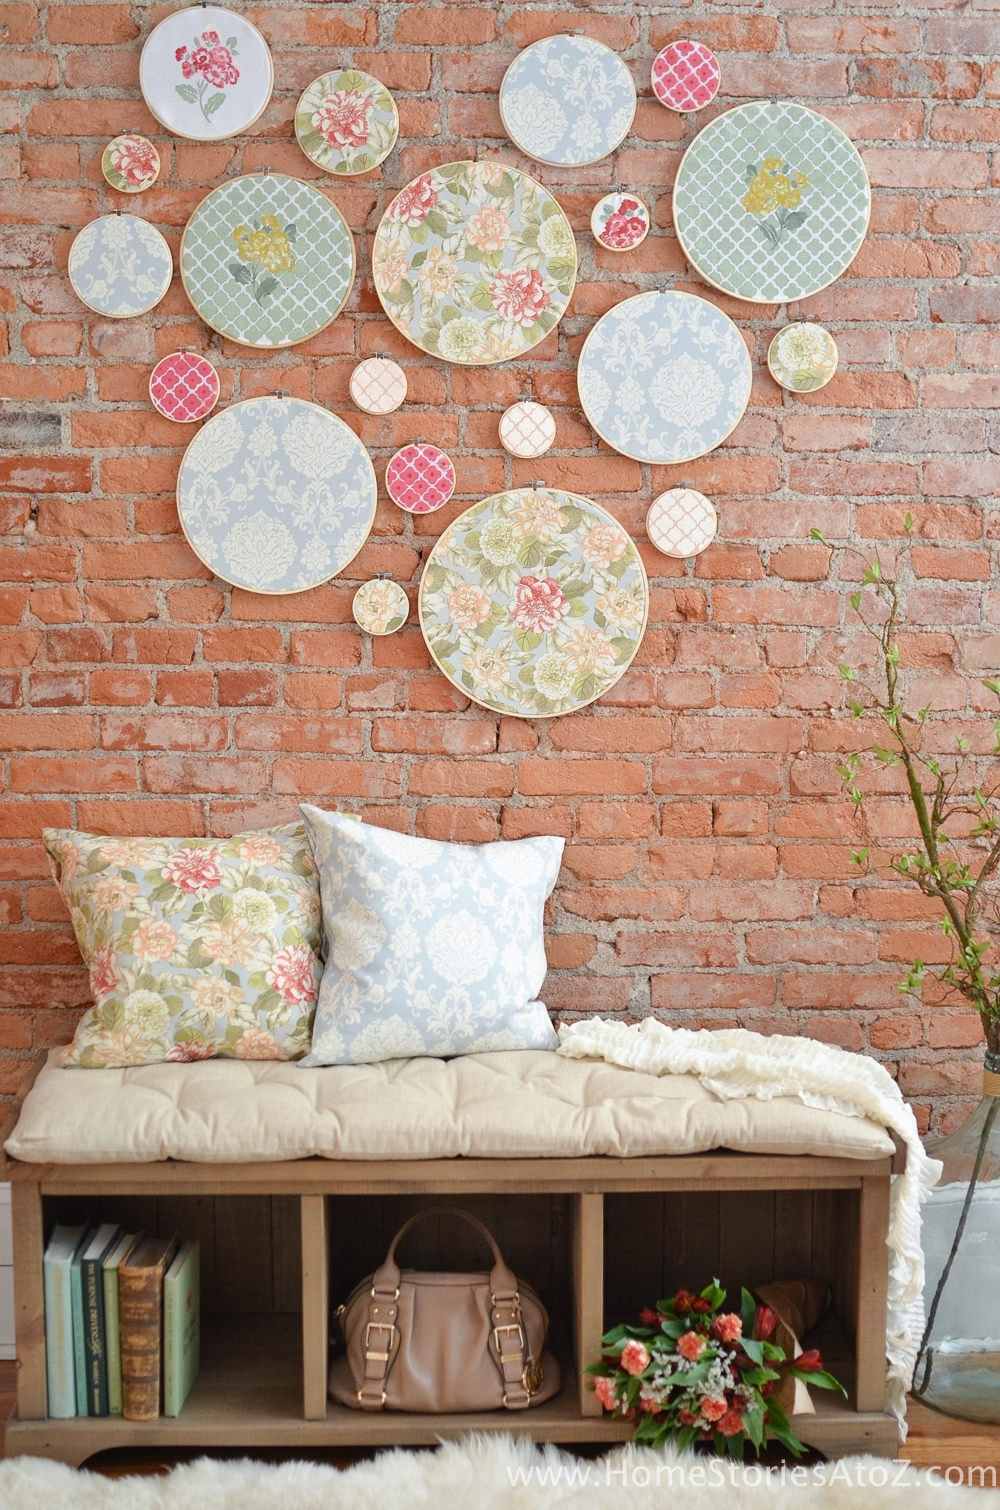 Diy Embroidery Hoop Wall Art – Home Stories A To Z Inside Recent Fabric Hoop Wall Art (View 7 of 15)